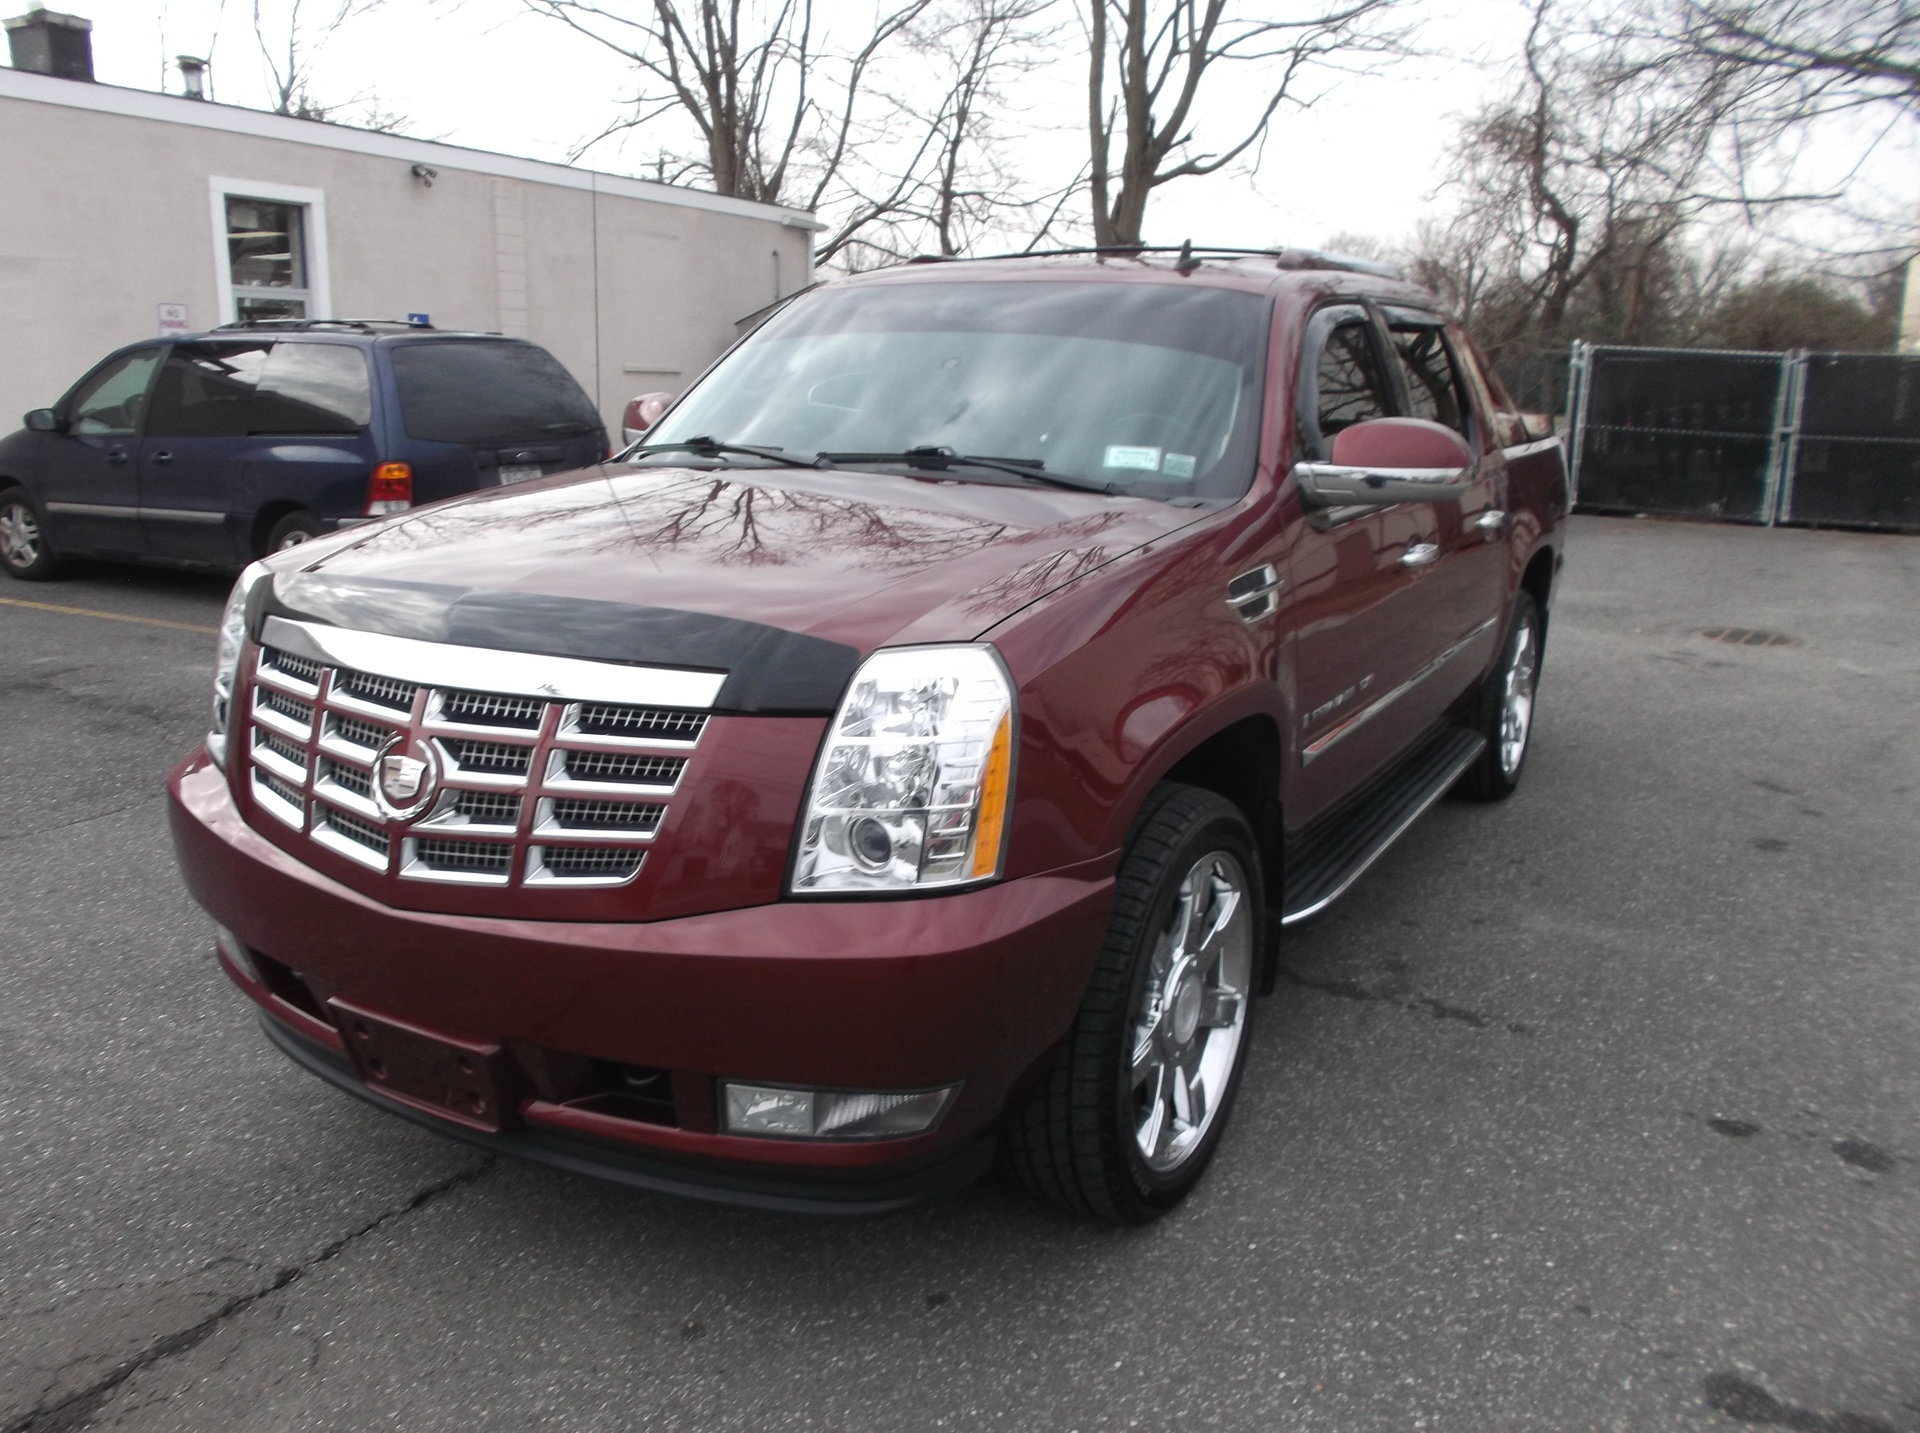 escalade west sale revo for ma cadillac base springfield baron in auto city sales